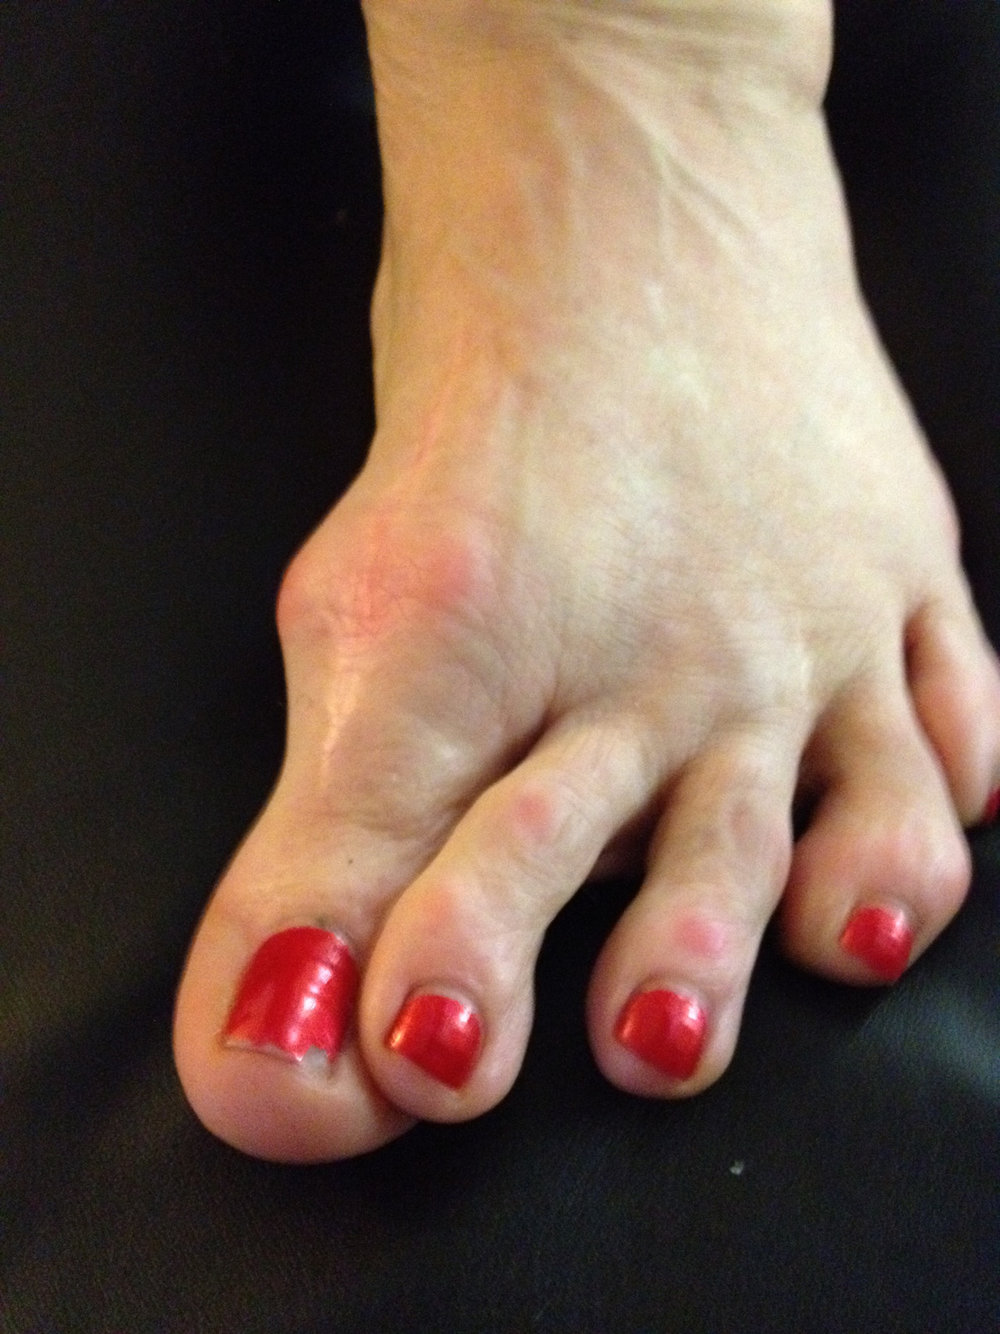 Hallux Varus: The anti-bunion. Thinking of bunion surgery ? This could be a complication if things go sour.    Hallux varus, when the big toe drifts medially, is a real problem. It is typically an acquired problem from a hallux valgus/bunion surgery gone awry.  (This post will not delve into some of the suspected culprits of this problem including   Mc Bride, Scarf, Chevron or Akin osteotomy etc but that would be some of the reader's next steps into diving deeper into this problem. Surgical procedures to the 1st ray was one of the gait guys senior orthopedic residency thesis topics, hence we now hate this topic !).        This deformity can be rigid or flexible.  This case seen in the photo walked into our office recently.  These are not all that common and you won't see many of them, but you do need to know they exist and where they can come from, how to cope with them and what issues you will need to understand (ie. footwear, talked about below) to assist your client.      Hallux varus can be painful, uncomfortable and even debilitating in some cases.  Sometimes they necessitate fixation to realign the hallux bone along a more reasonable alignment with the shaft of the 1st metatarsal.            Early correction seems critical because the linear and rotational forces at work generating the deformity can eventually lead to a further progressing deformity that can be even more problematic. When left unaddressed more drastic and radical corrective interventions seem necessary, including but not limited to,   resection of the base of the proximal phalanx, fusions and tendon transfers. However, newer surgical procedures are coming along proposing things like   reconstruction of the lateral stabilising components of the first metatarsophalangeal (MTP) joint.            So here at The Gait Guys we like to ask the big, and sometimes obvious, questions.  What is toe off in walking and running gait going to look like in this hallux varus case ?  Well, one has to consider that the normal linear and rotational forces are now changed.  This means that the normal eccentric axis of the 1st MPT joint involved is going to very likely be changed. This means that the clearance of the base of the phalanx could be impaired and lead to painful binding, grinding or locking of the toe prior to reaching the adequate range of dorsiflexion for normal toe off. Additionally, the toe may act functionally unstable as the rotational forces remain unchecked leading to joint instability. Naturally, the medial foot tripod will be impaired and since the big toe acts in part like a kickstand to help support and fixate the 1st metatarsal (medial tripod), pronation forces can remain unchecked and beyond normal.  Naturally the foot will attempt to shift the tripod stability elsewhere and often this goes to the 2nd metatarsal commonly found with hammering of the digit in an attempt to help with stability through increased long flexor tone (FDL). Pain with a hallux varus can be a bigger complaint than the unsightly surgical outcome.           There is so much more to this topic. We could go on for at least another 50 pages on this topic (as our thesis reminds us) but volume is not the point of today's task. It was to bring something new to light for our brethren here at The Gait Guys.  In the photo above, you see drift of the lesser toes, seemingly to follow the big toe. What you need to know is that this is not typical, however not impossible one could propose. This client had some other forefoot procedures done that were largely, although not exclusively, related to that lesser digit drift. Regardless, this is a client that is in some amount of foot trouble. They had good mobility of the 1st MTP joint, so full toe off was possible but because of the instability and uncontrollable rotational forces the joint was painful. A simple intervention made her life infinitely more comfortable, moving her into rigid rocker bottomed shoes.  Dansko clogs for work, and ROCS shoes for walking.  This left us with a very happy client. Not bad, all things considered.  In the mean time we will watch for deformity progression even though the patient could not be urged to have another surgery probably even if their life depended upon it.            In summary, being a patient can be difficult. These days, more than ever it seems, one needs to do their homework and be their own advocate.  Prior to surgery several consults should have taken place, risk and rewards should have been discussed, realistic outcomes dialogued and perhaps most of all questioning whether surgery needed to be on the table in the first place. Remember, surgery is most wisely selected in cases of neurologic decline and excessively painful and further detrimental biomechanics (ie. unaddressed ACL deficiency eventually promoting secondary instability with time). If there are ways around either, they should be explored. Cosmetic correction should never be on the table, and in the case of the foot, nor should poor shoe choices that promote problems.